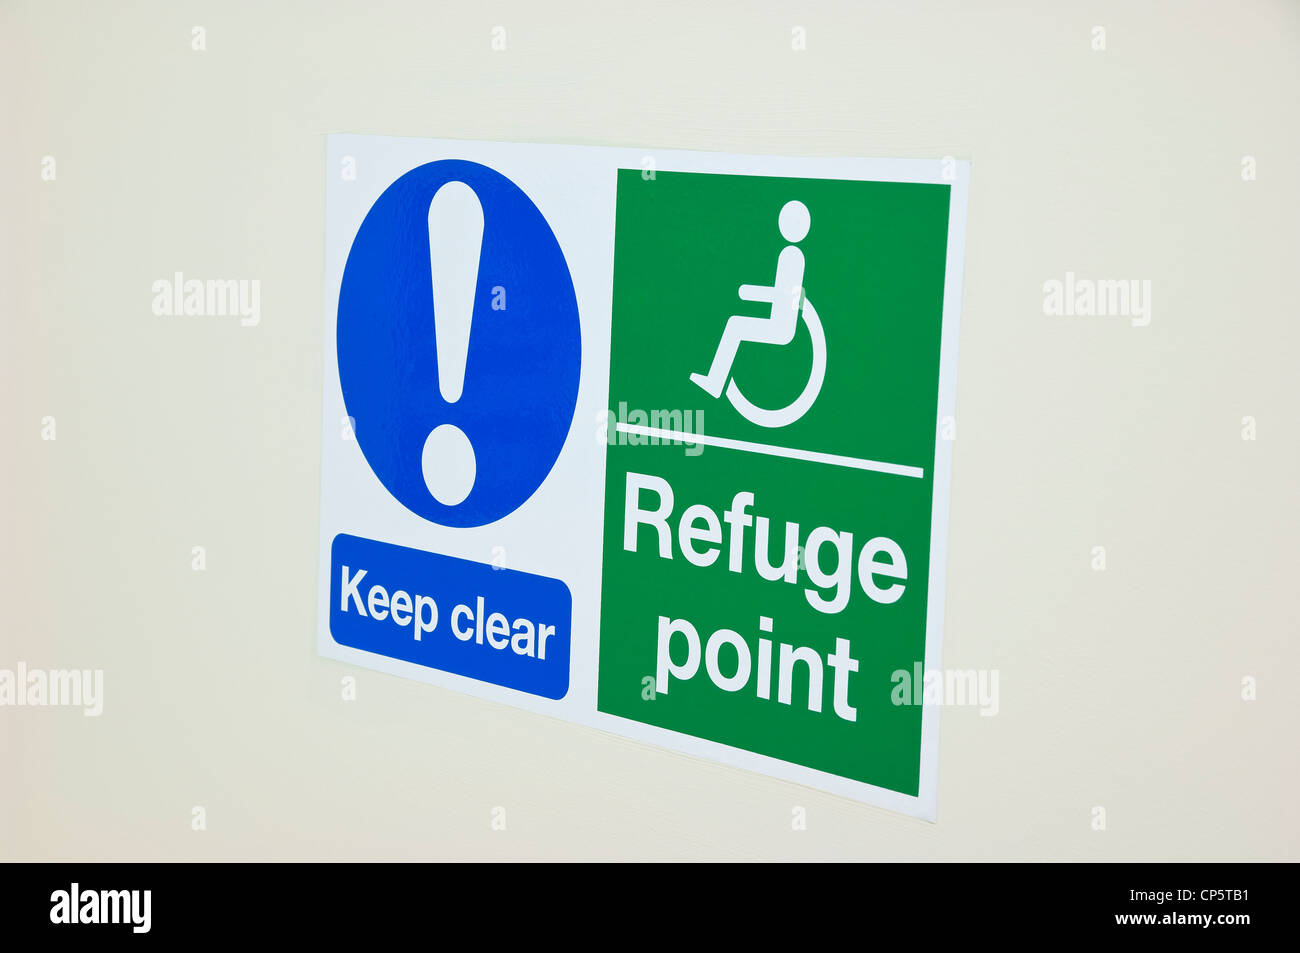 Disability Wheelchair Refuge Point Sign - Stock Image